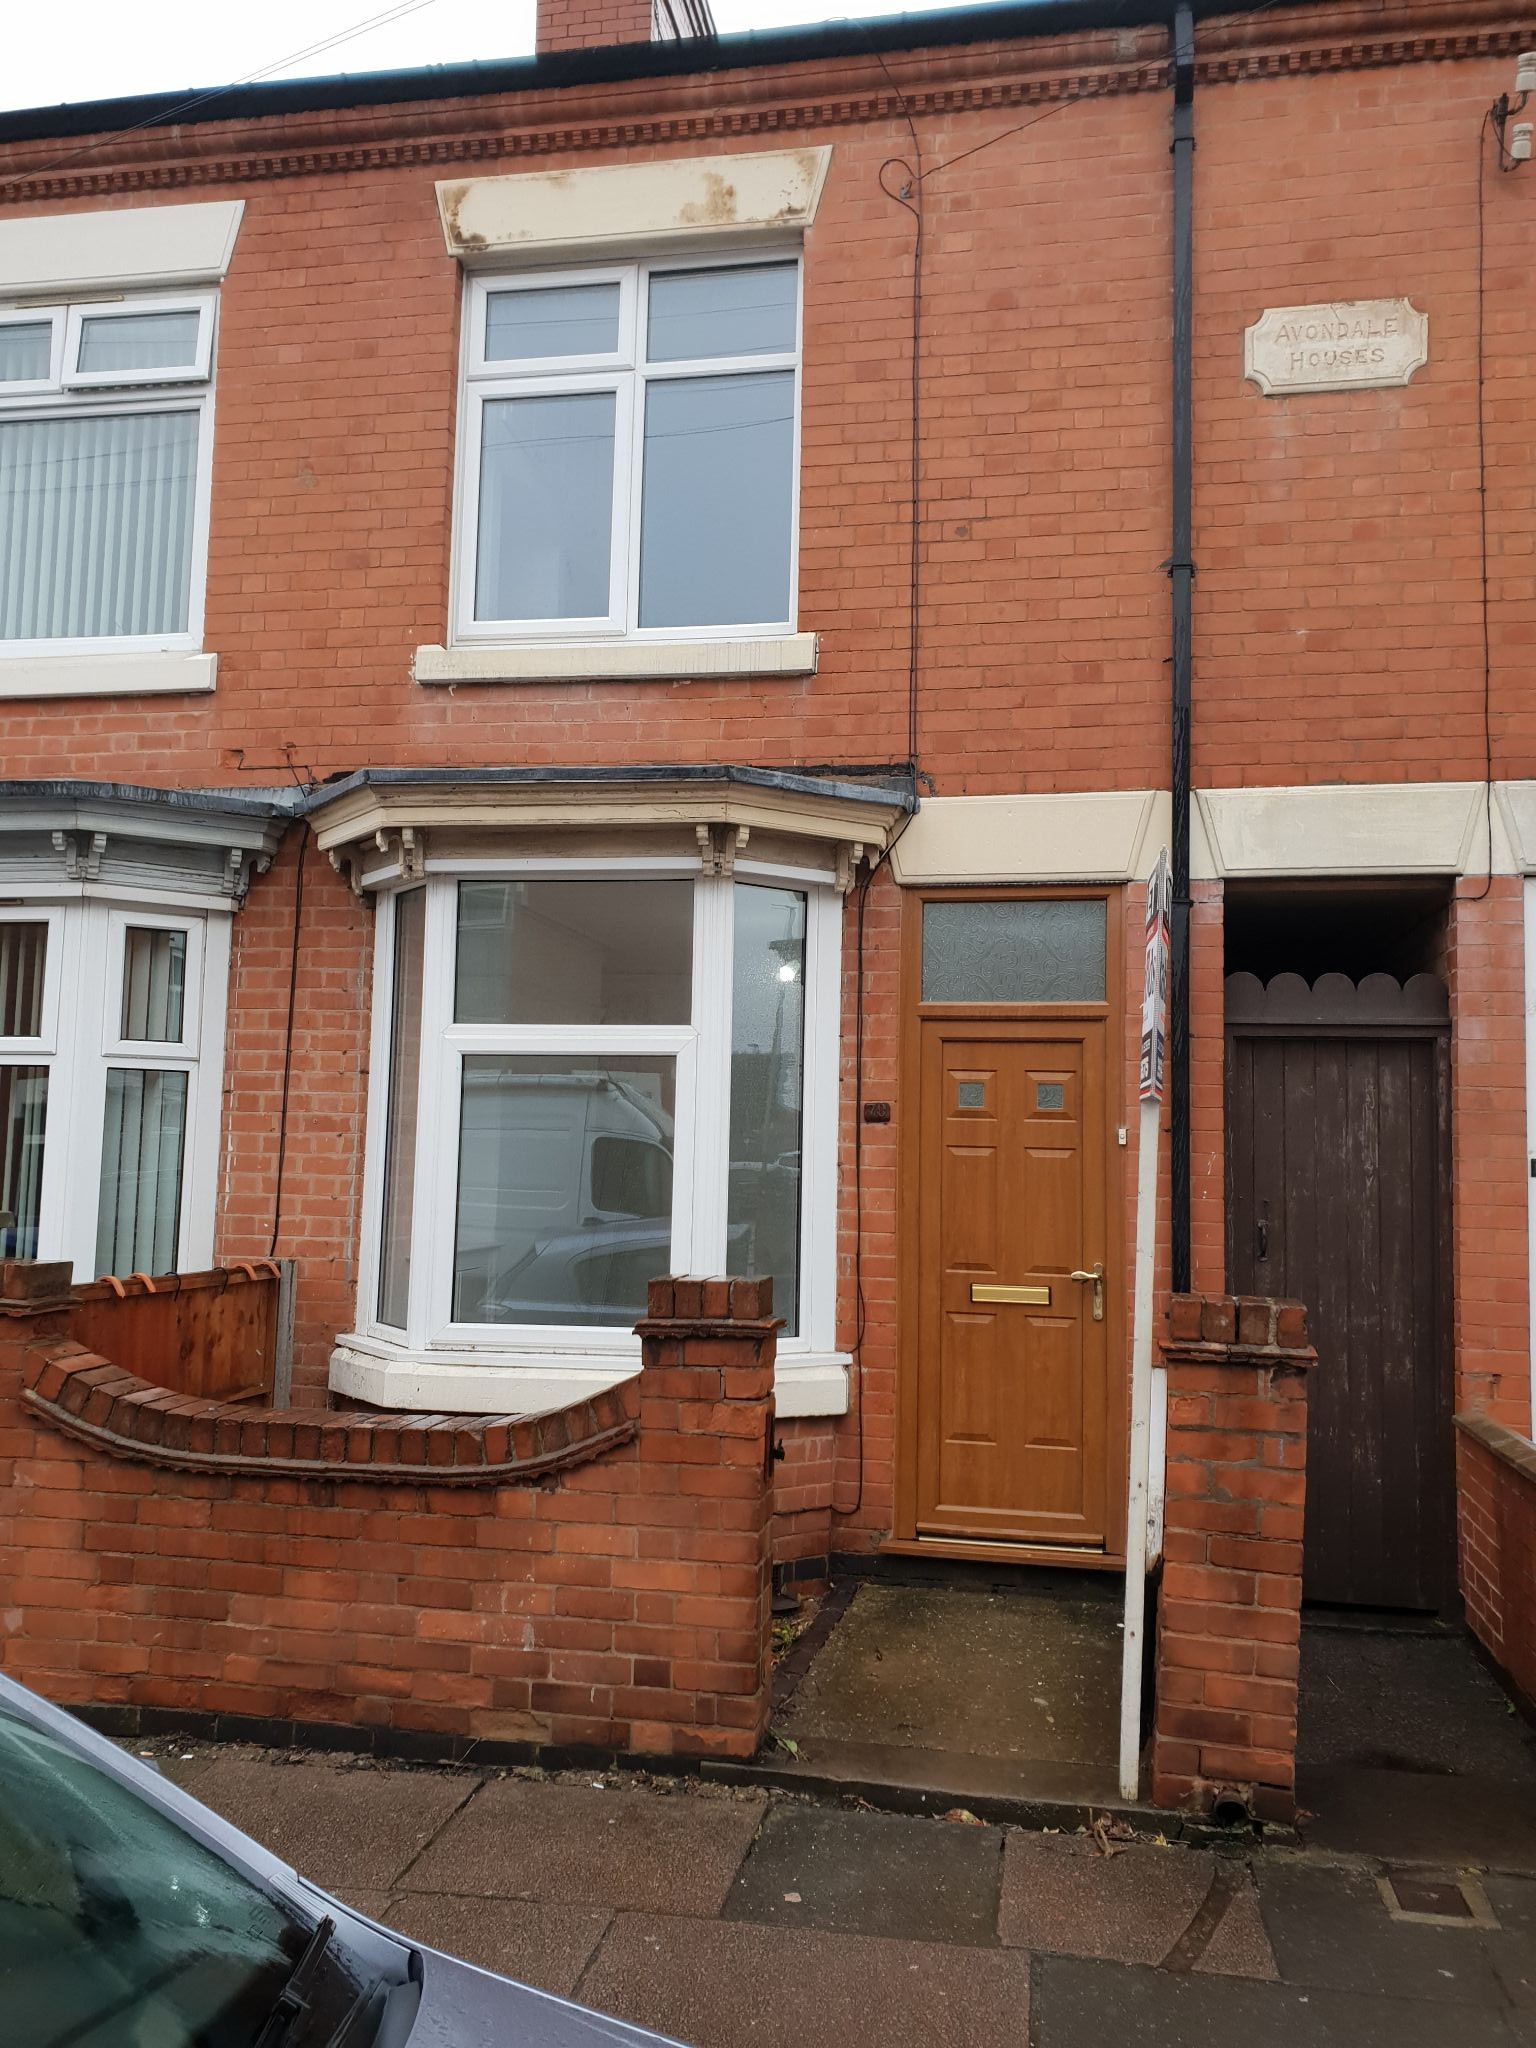 3 bedroom mid terraced house To Let in Leicester - Photograph 1.